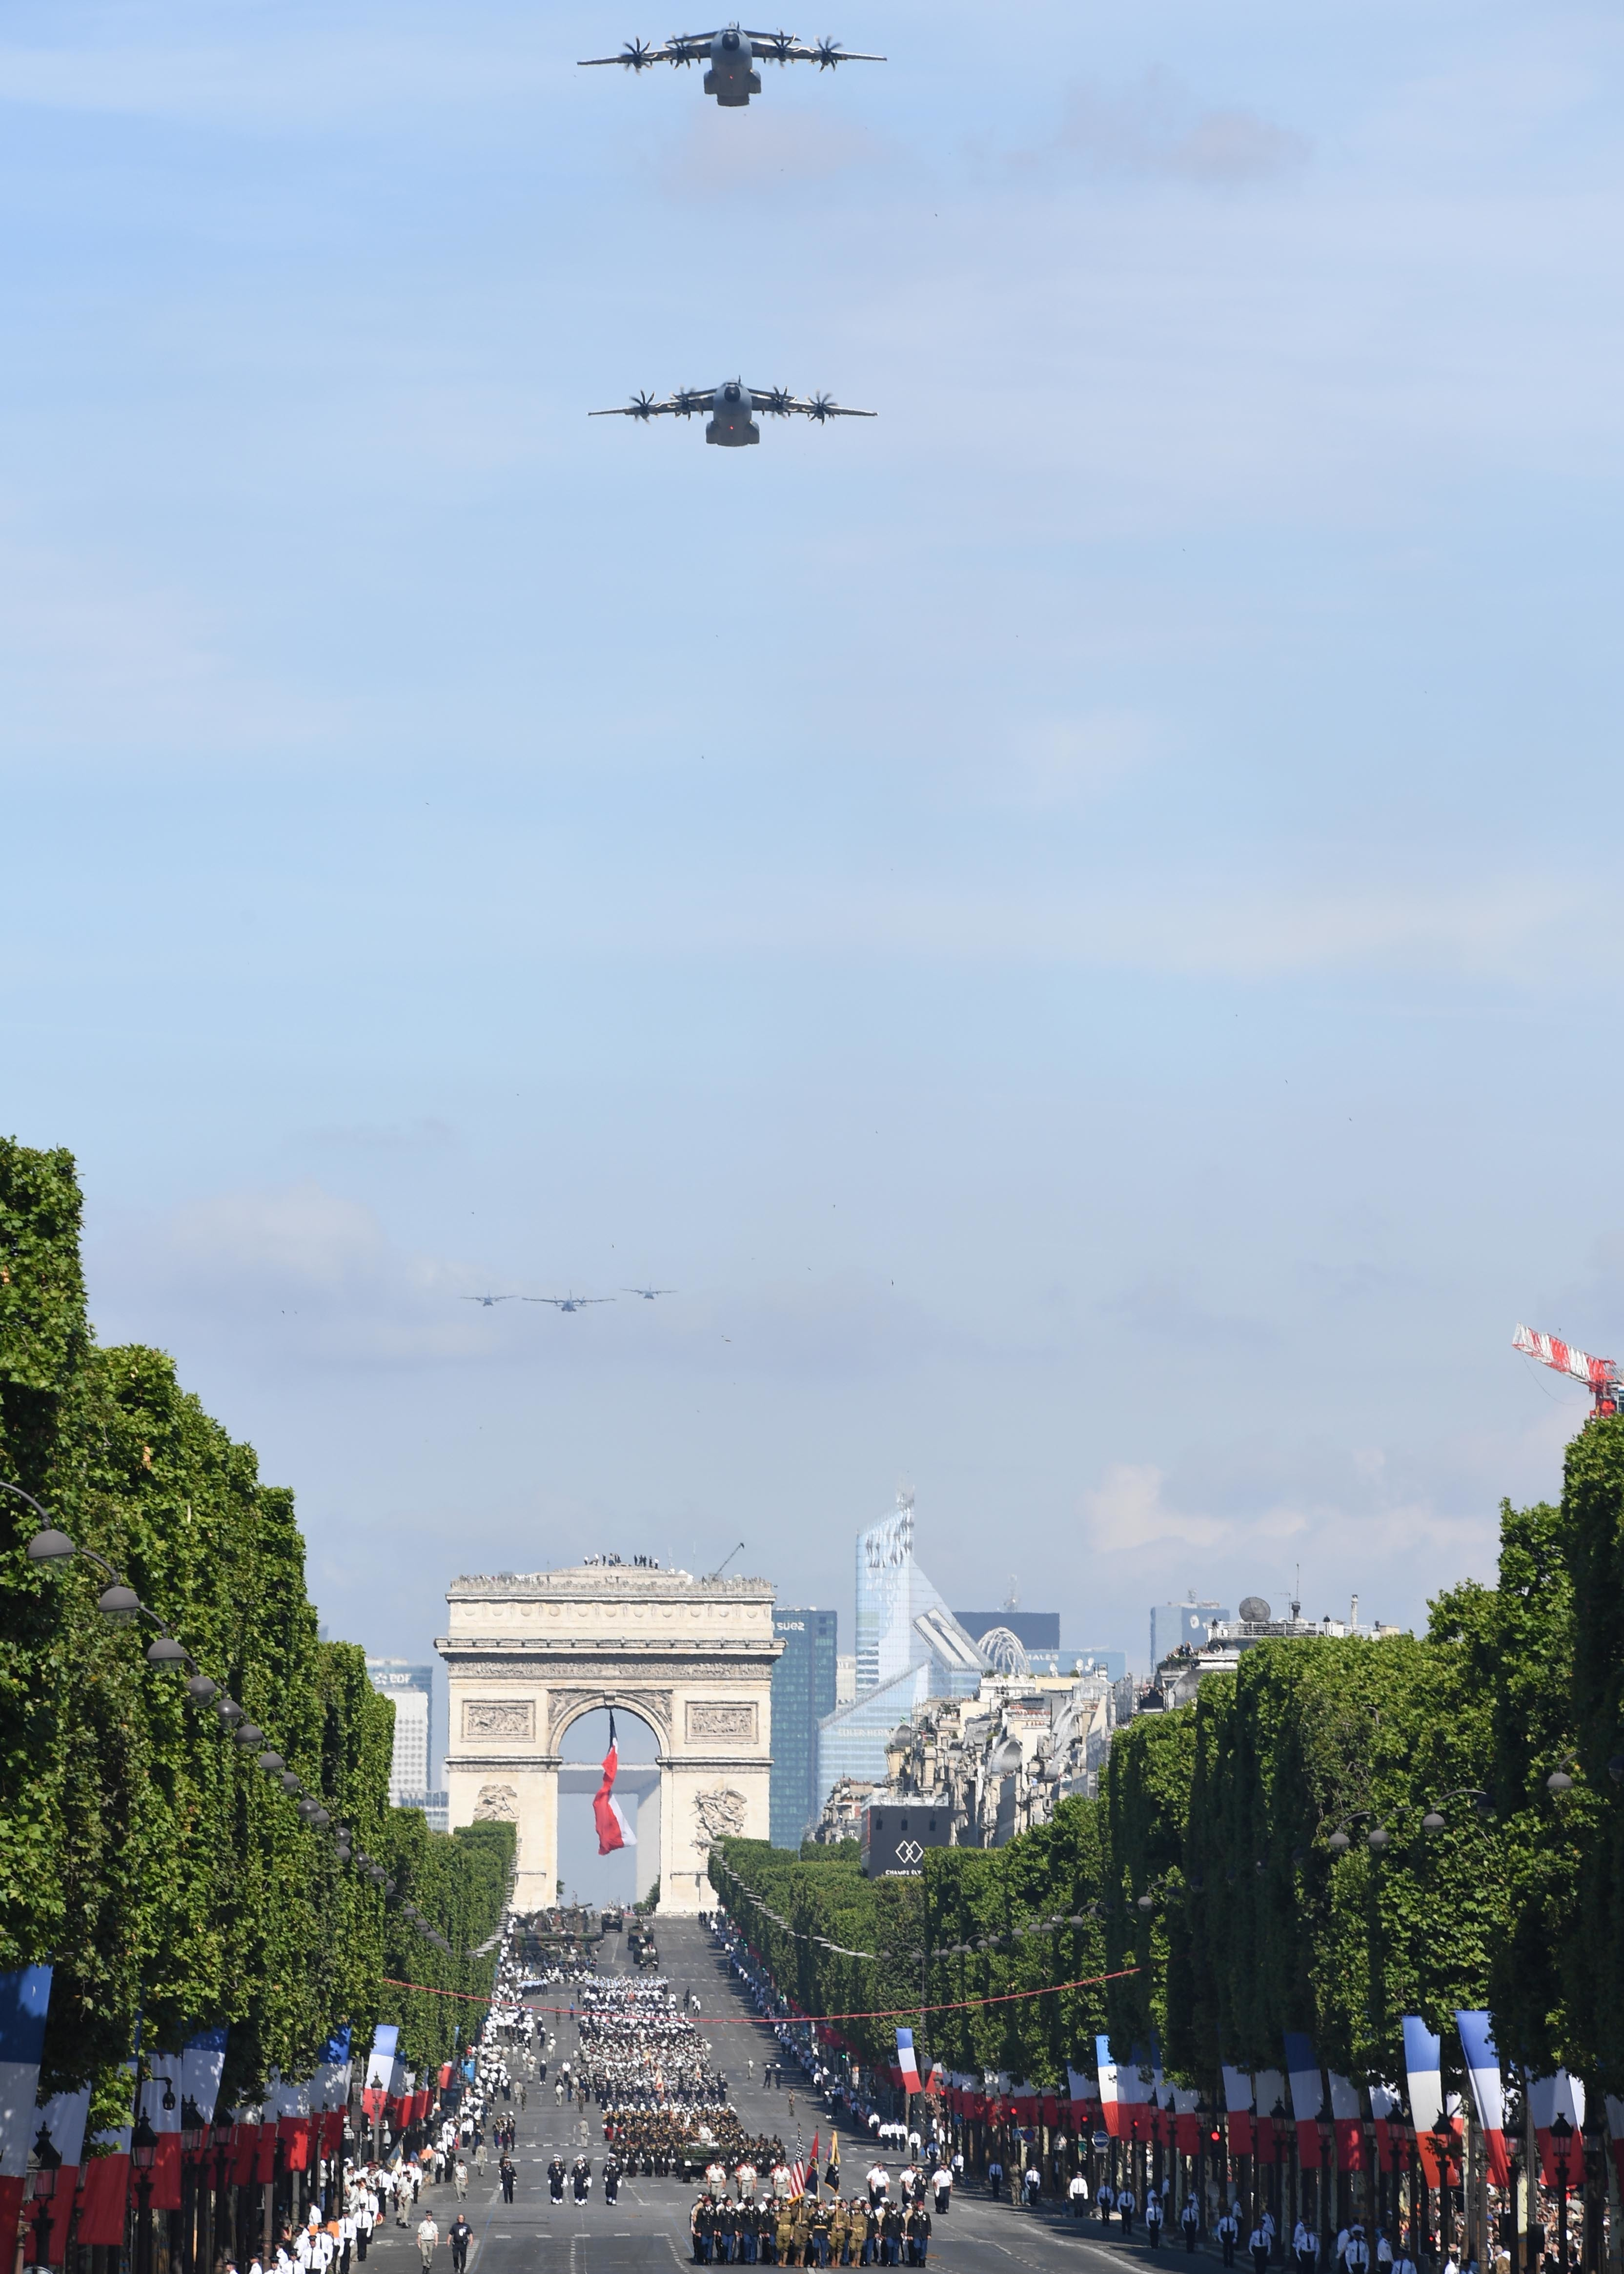 170714-N-AC979-354 PARIS (July 14, 2017) French aircraft conduct a flyover over the Avenue des Champs-Elysées during the Military Parade on Bastille Day. This year's parade included more than 90 aircraft and helicopters, 200 vehicles and 3,700 participants. (U.S. Navy photo by Chief Mass Communication Specialist Michael McNabb/Released)